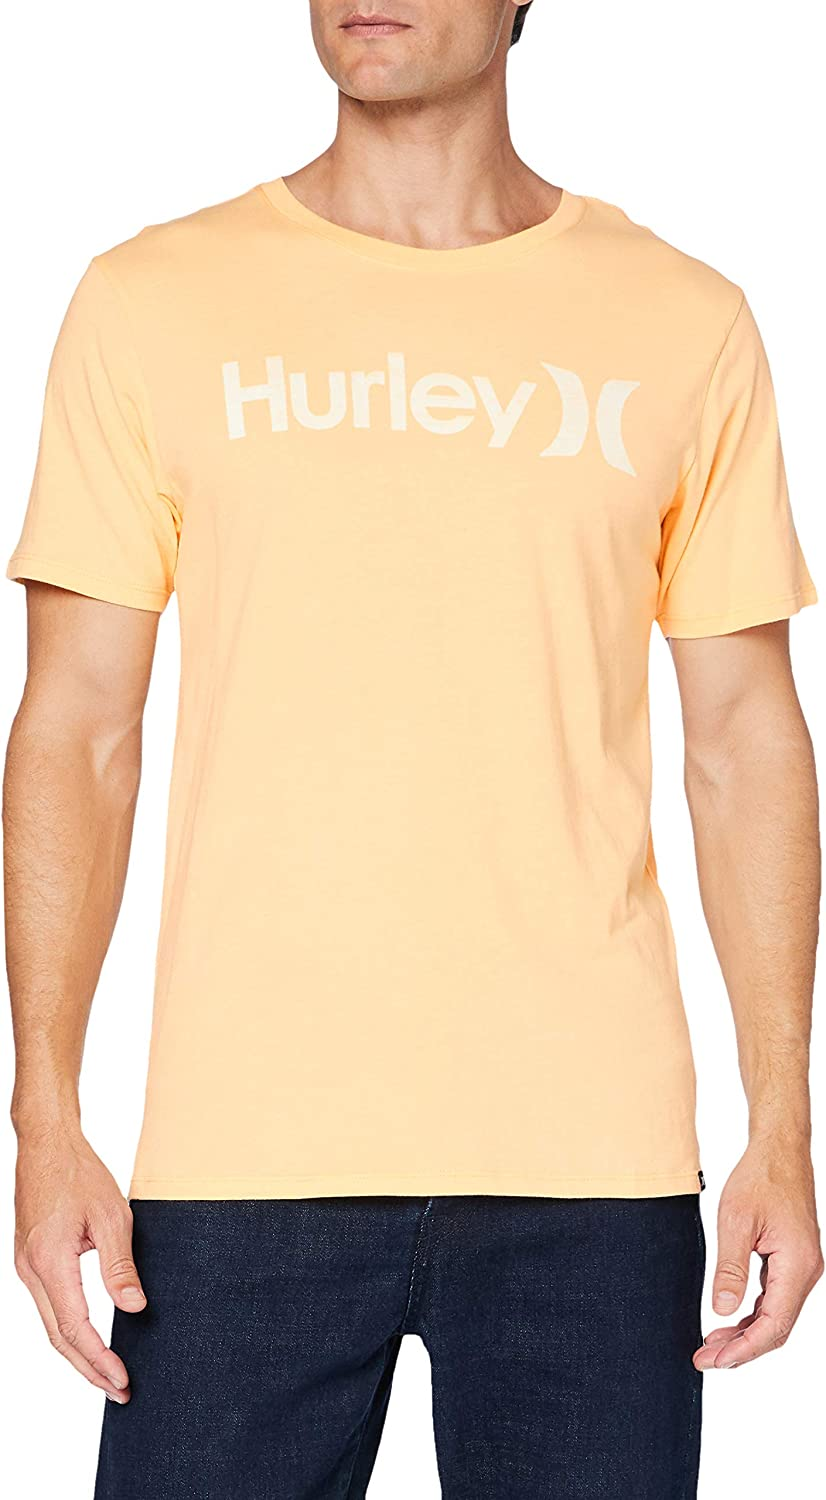 Hurley Men's One and Only Through Sleeve T-Shirt Short Be super welcome Push Special sale item